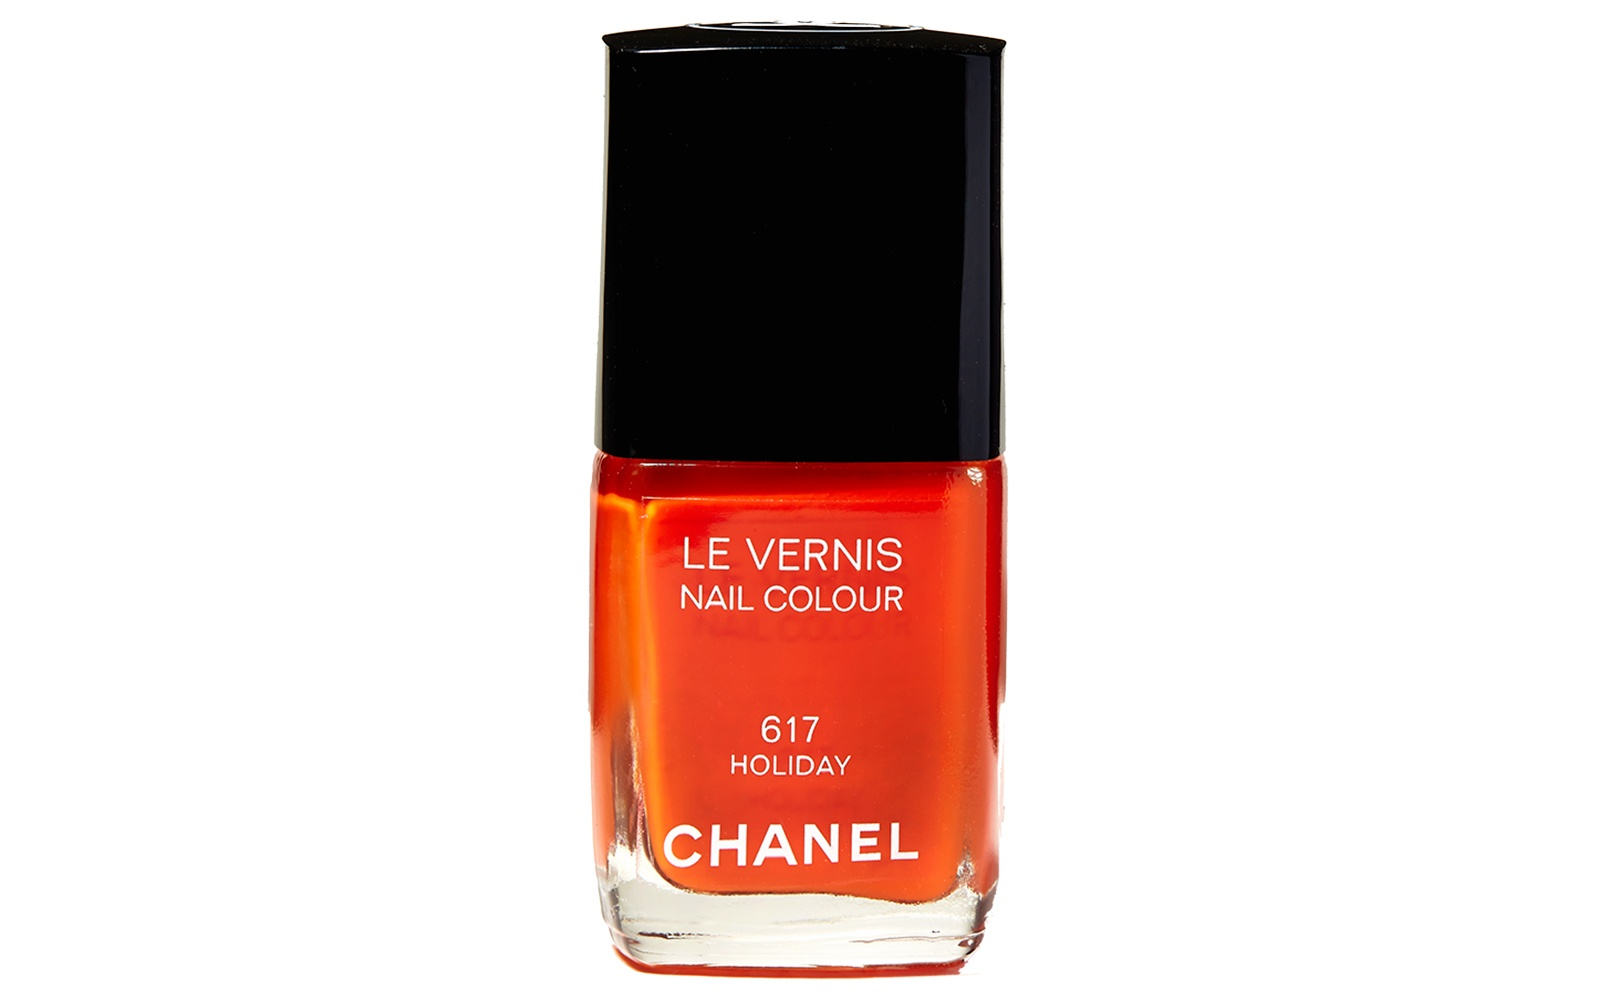 Chanel Le Vernis Nail Colour in Holiday.